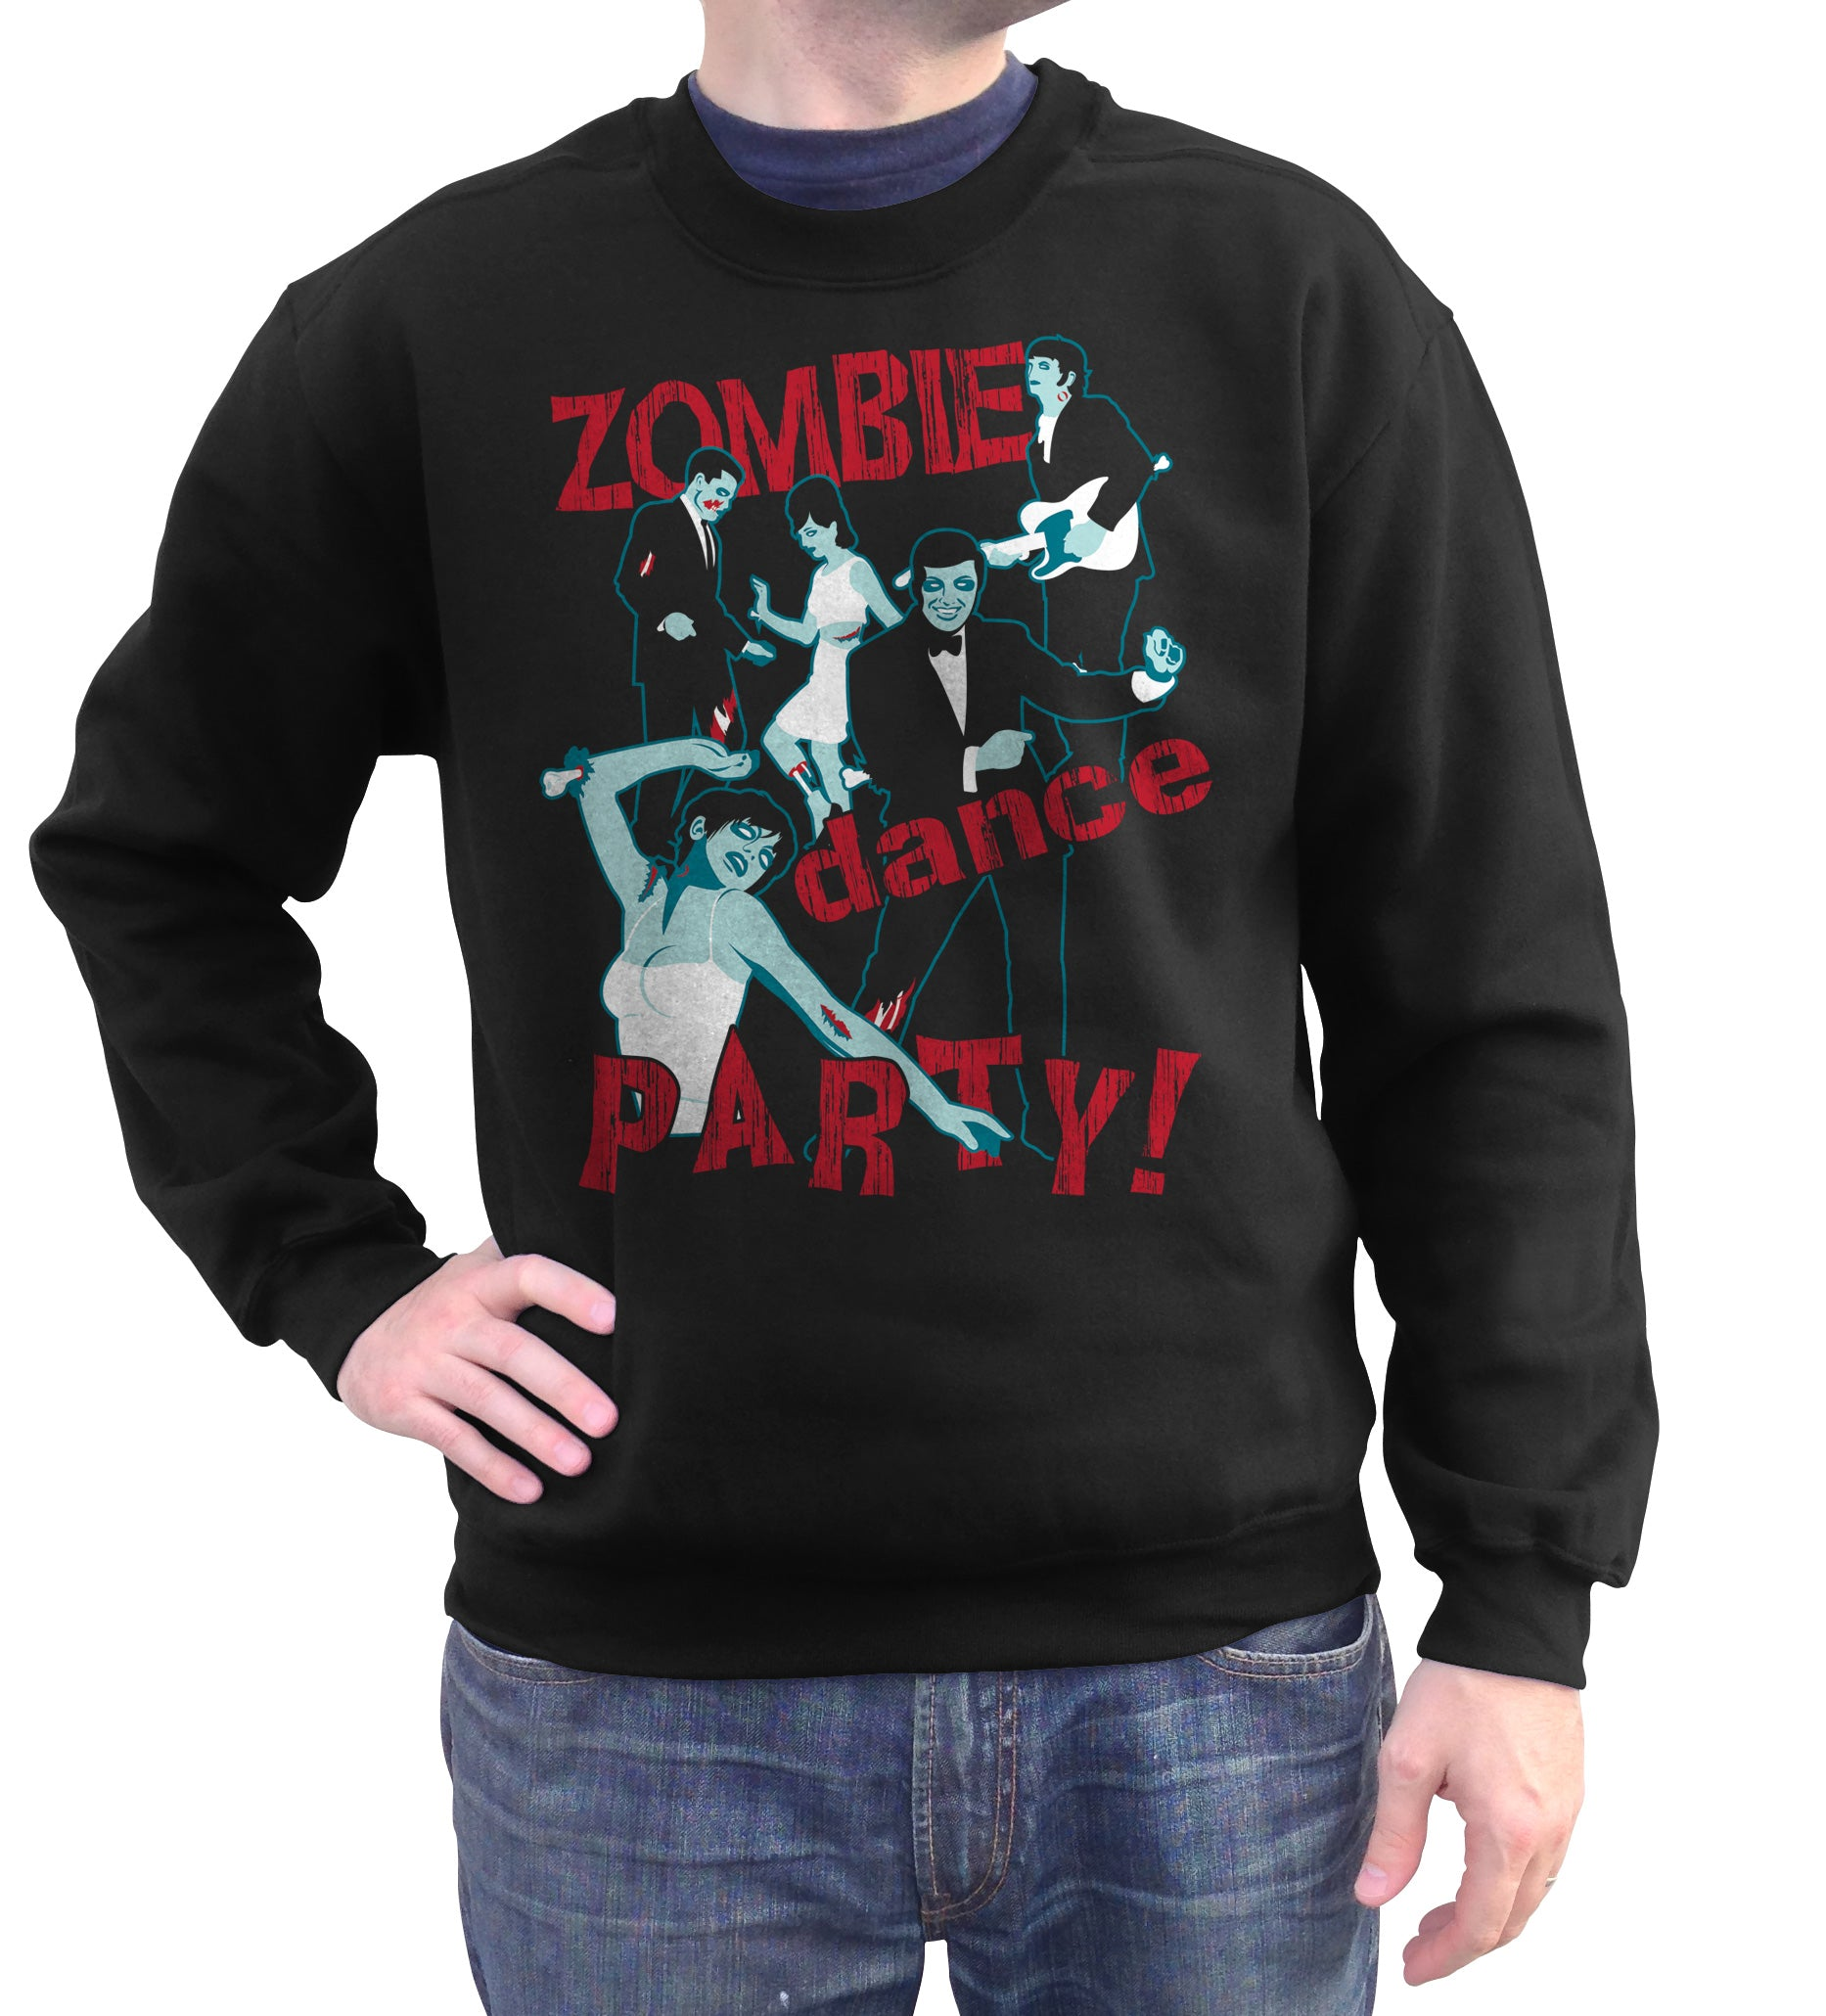 Unisex Zombie Dance Party Sweatshirt - By Ex-Boyfriend